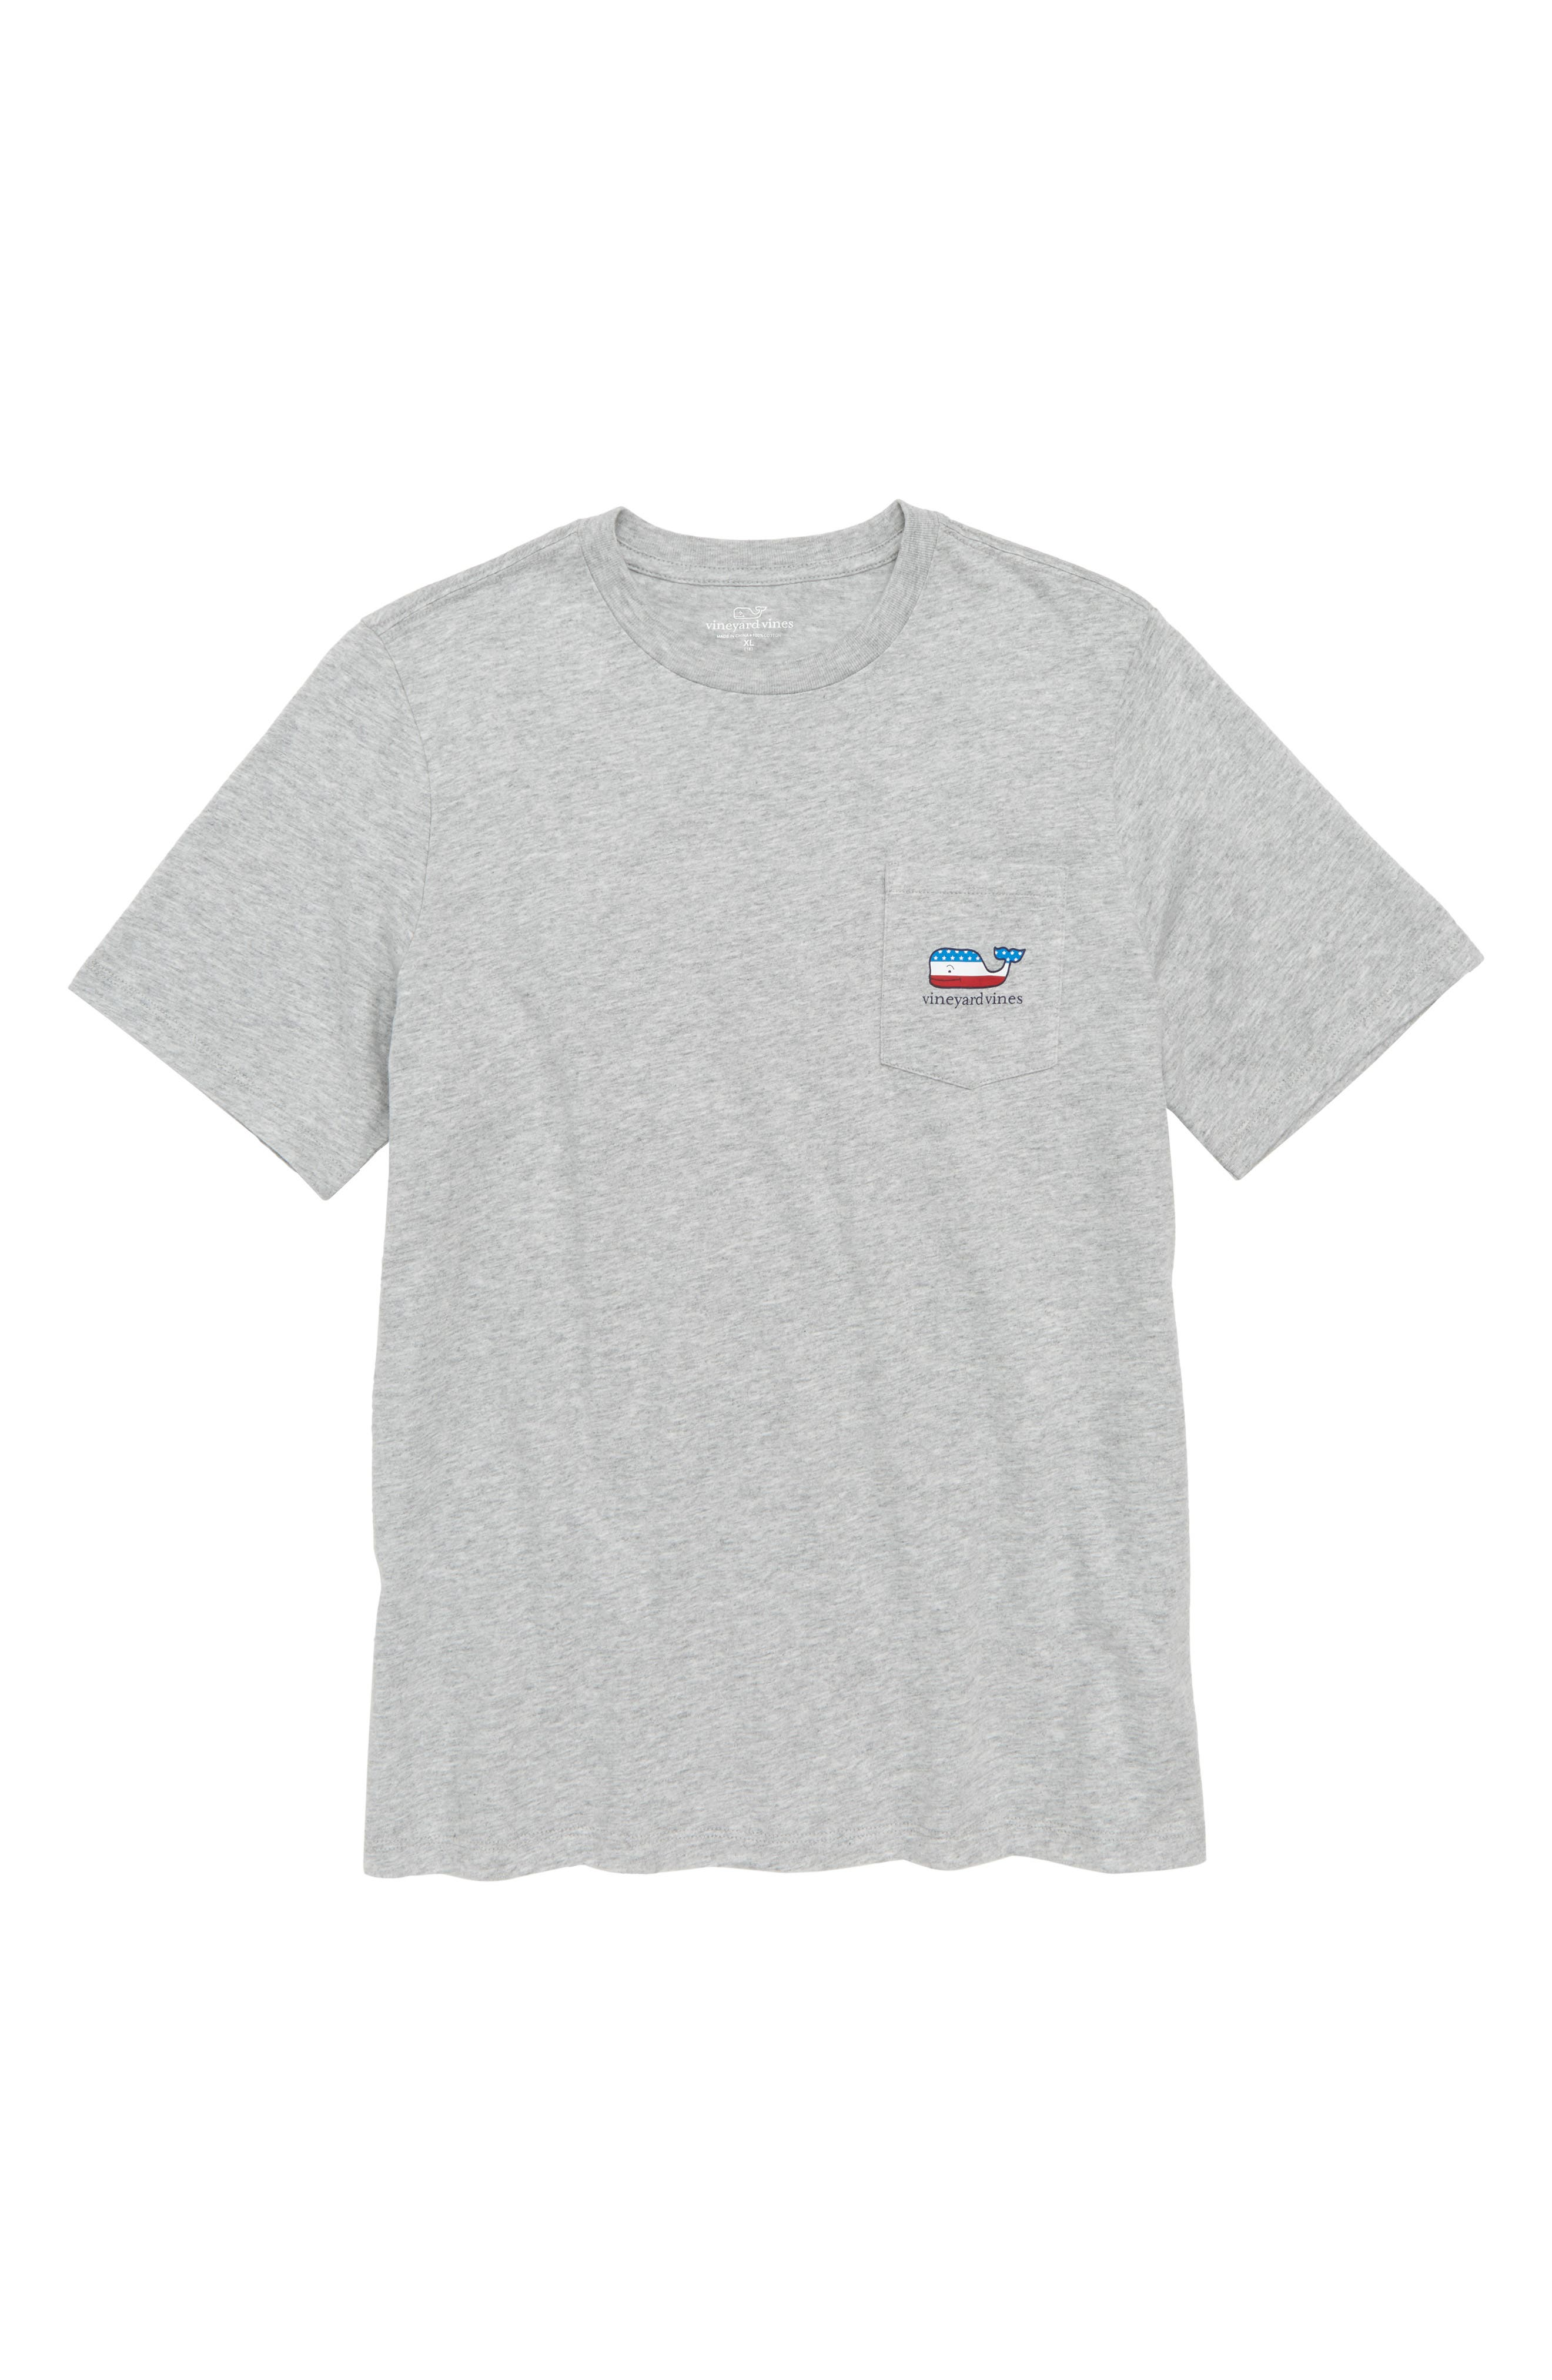 vineyard vines USA Whale Pocket T-Shirt (Toddler Boys & Little Boys)